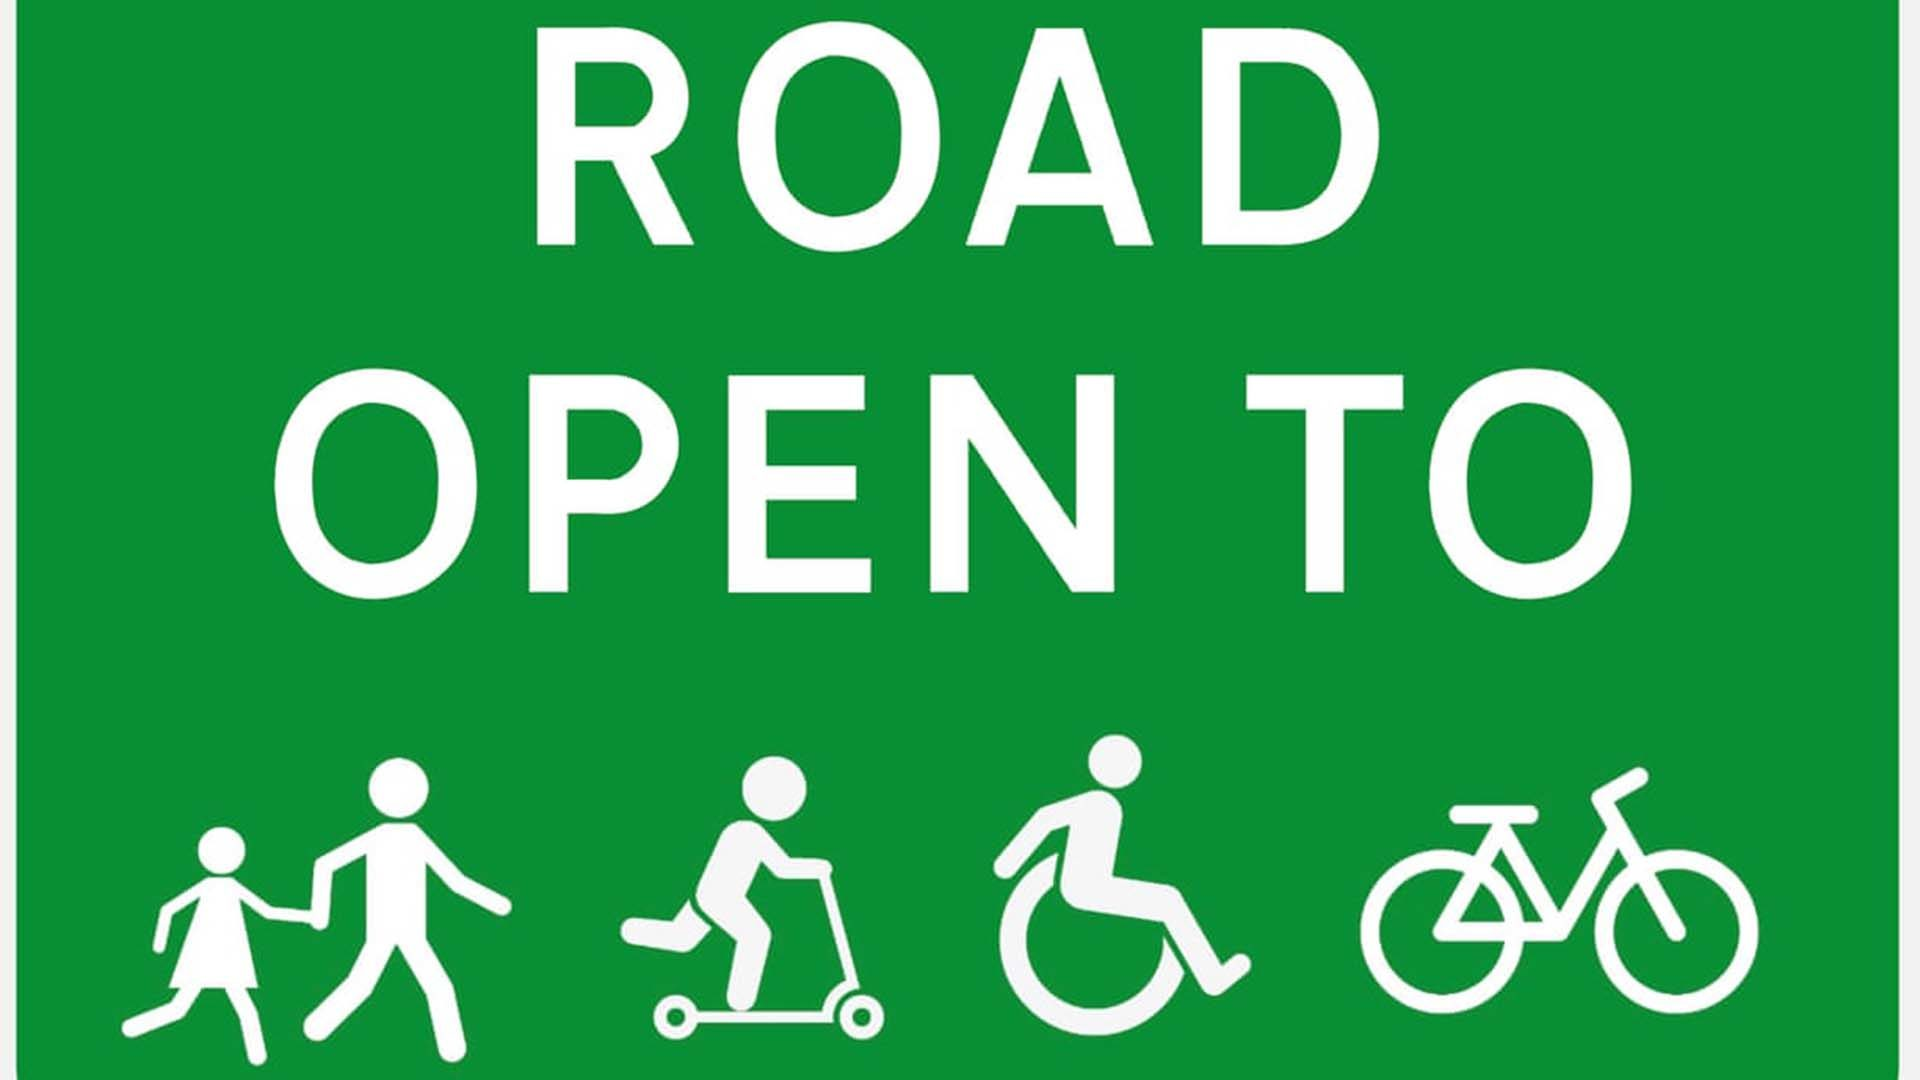 LTN Road Open To sign